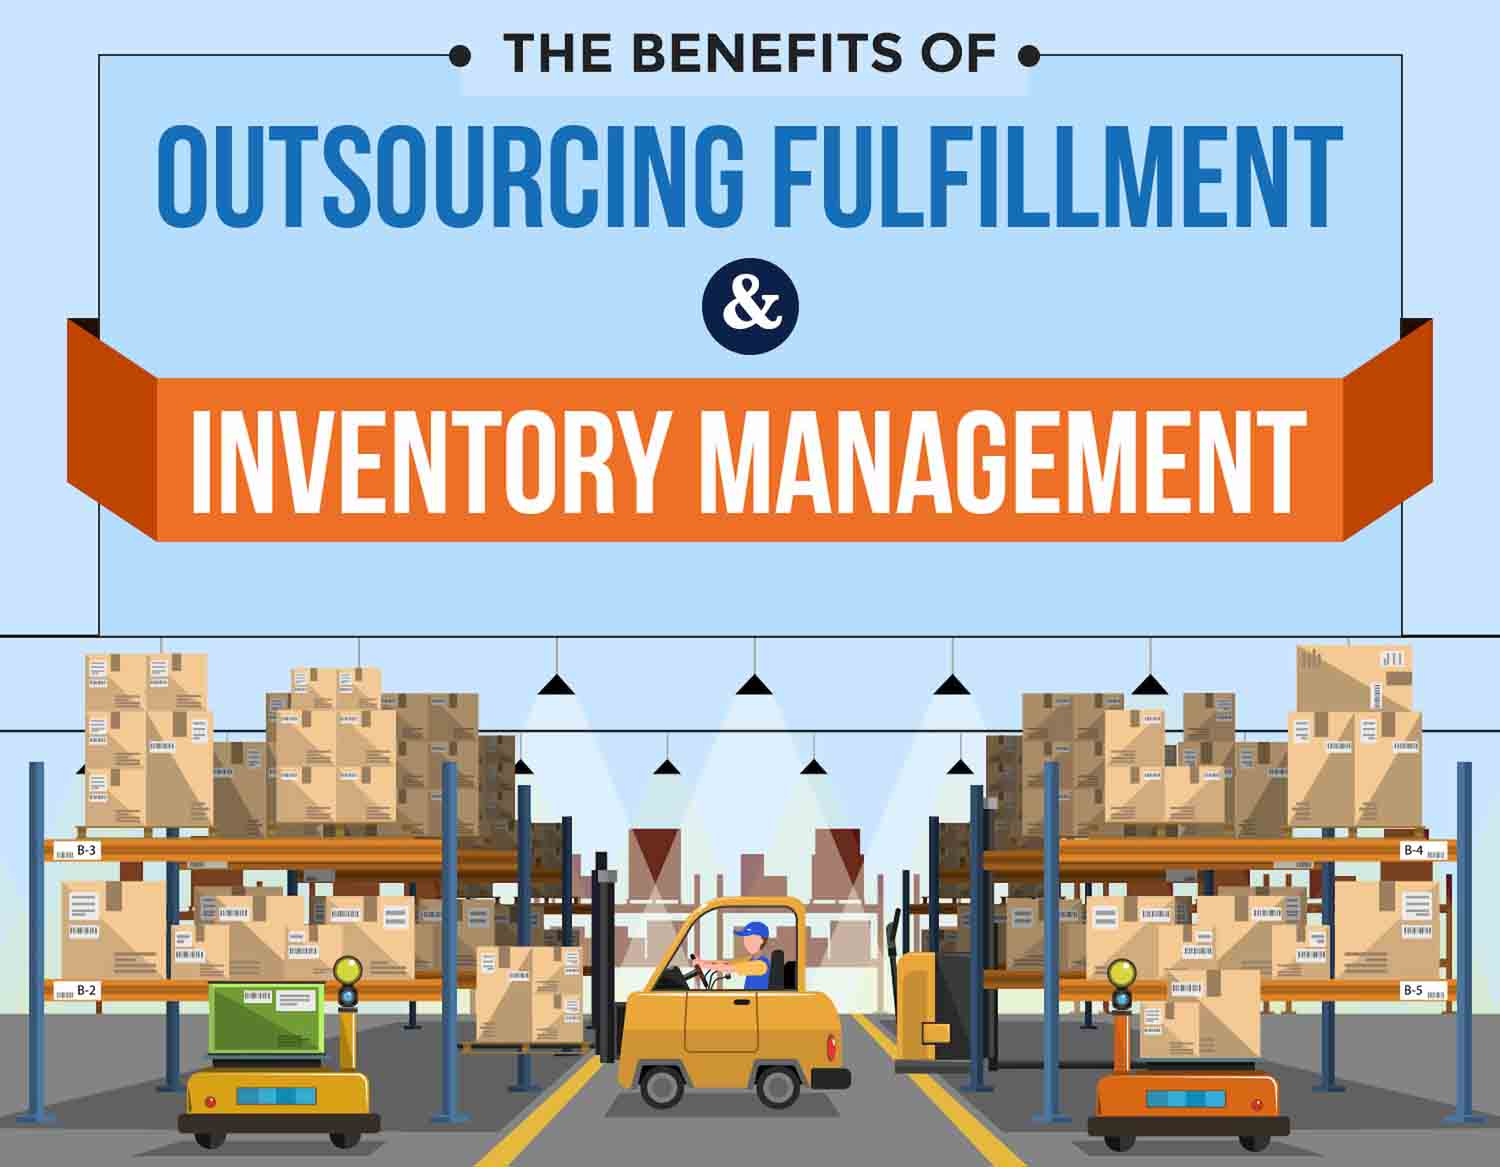 The Benefits of Outsourcing Fulfillment